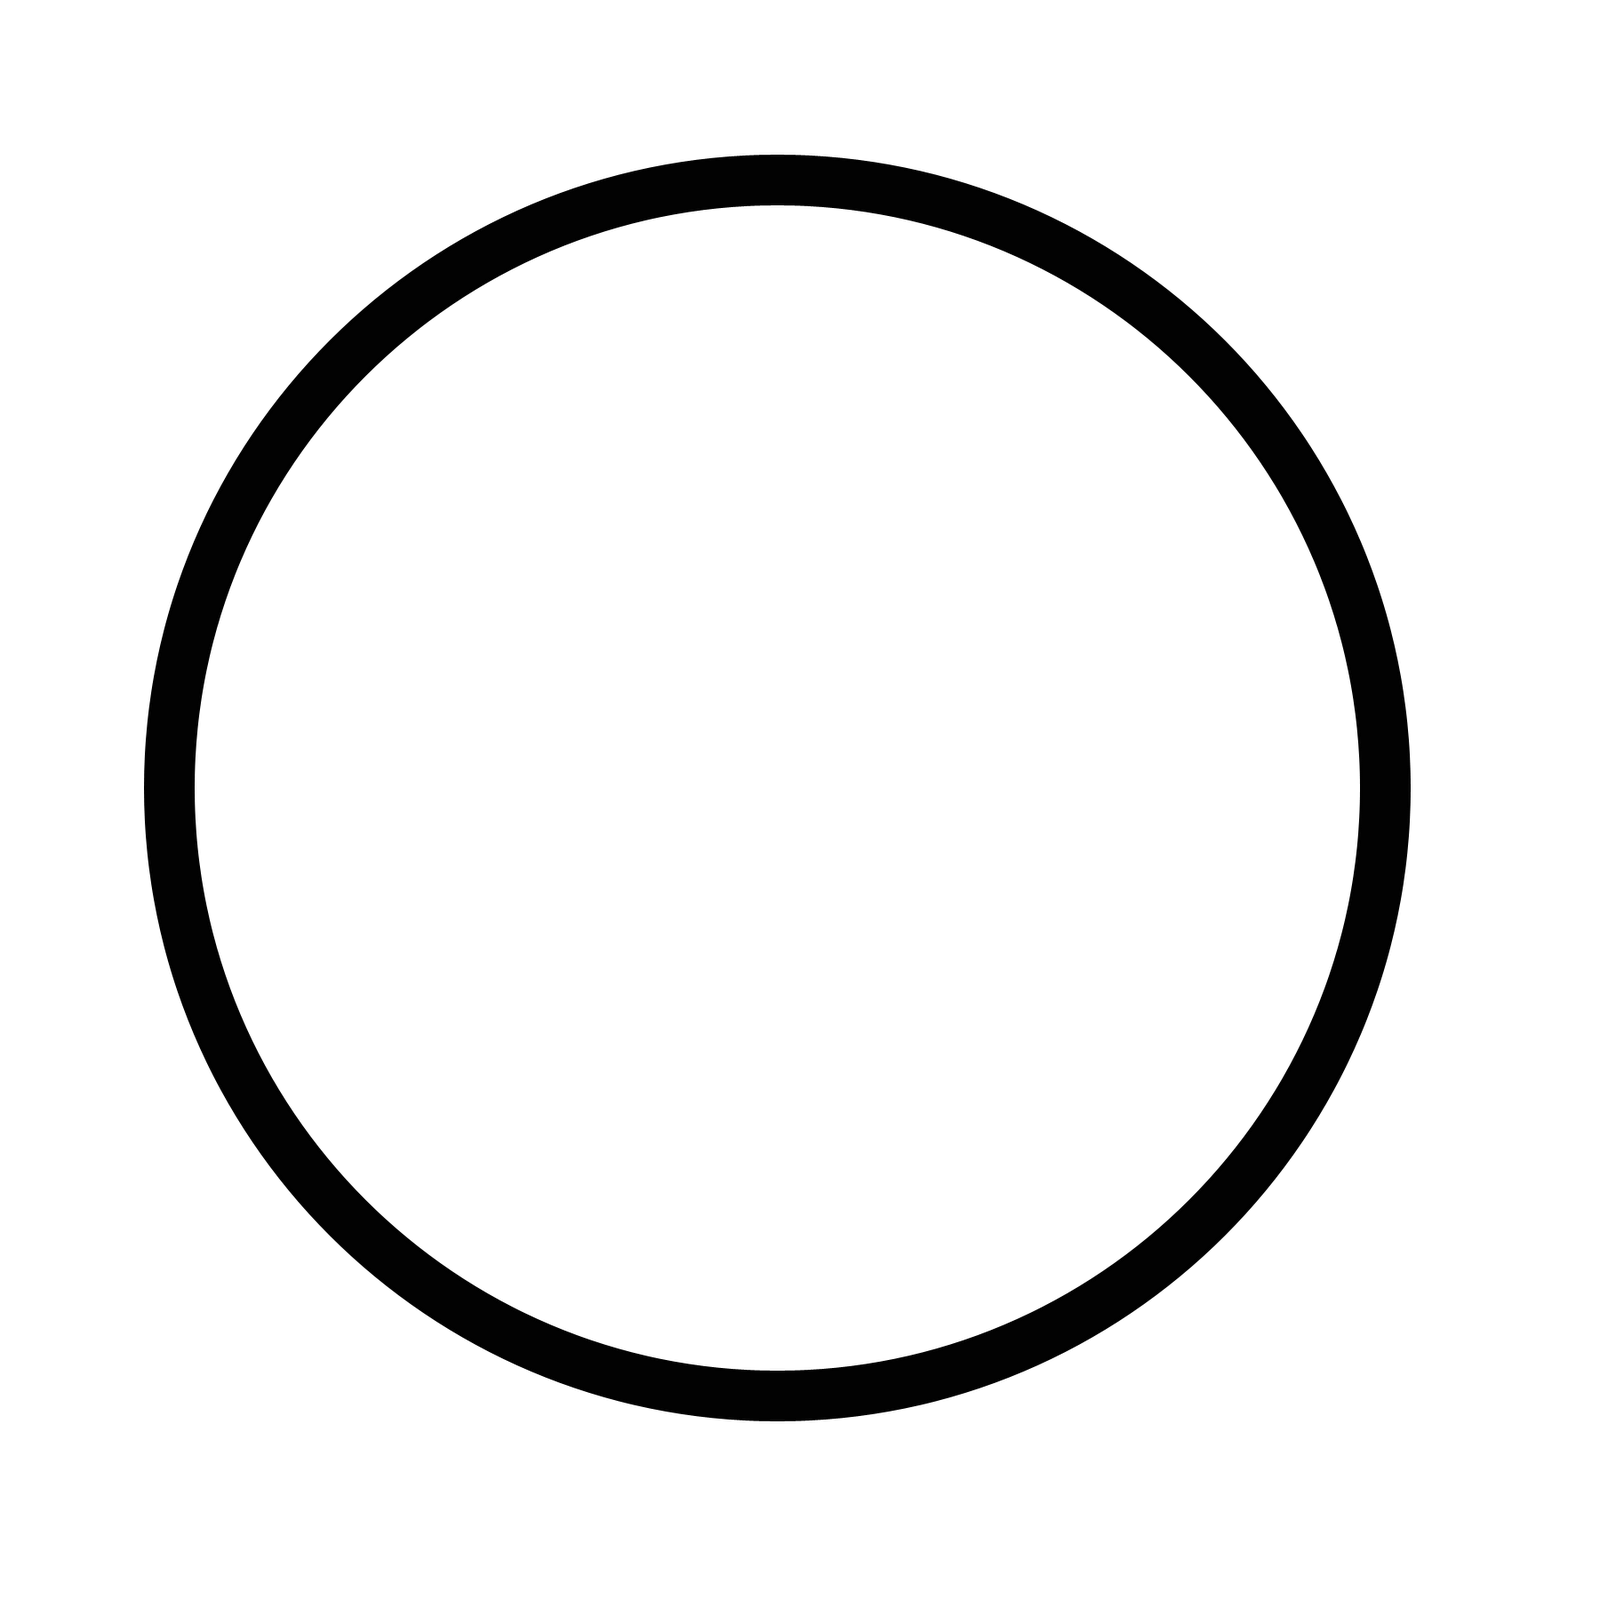 Circle Free Transparent Png 21494